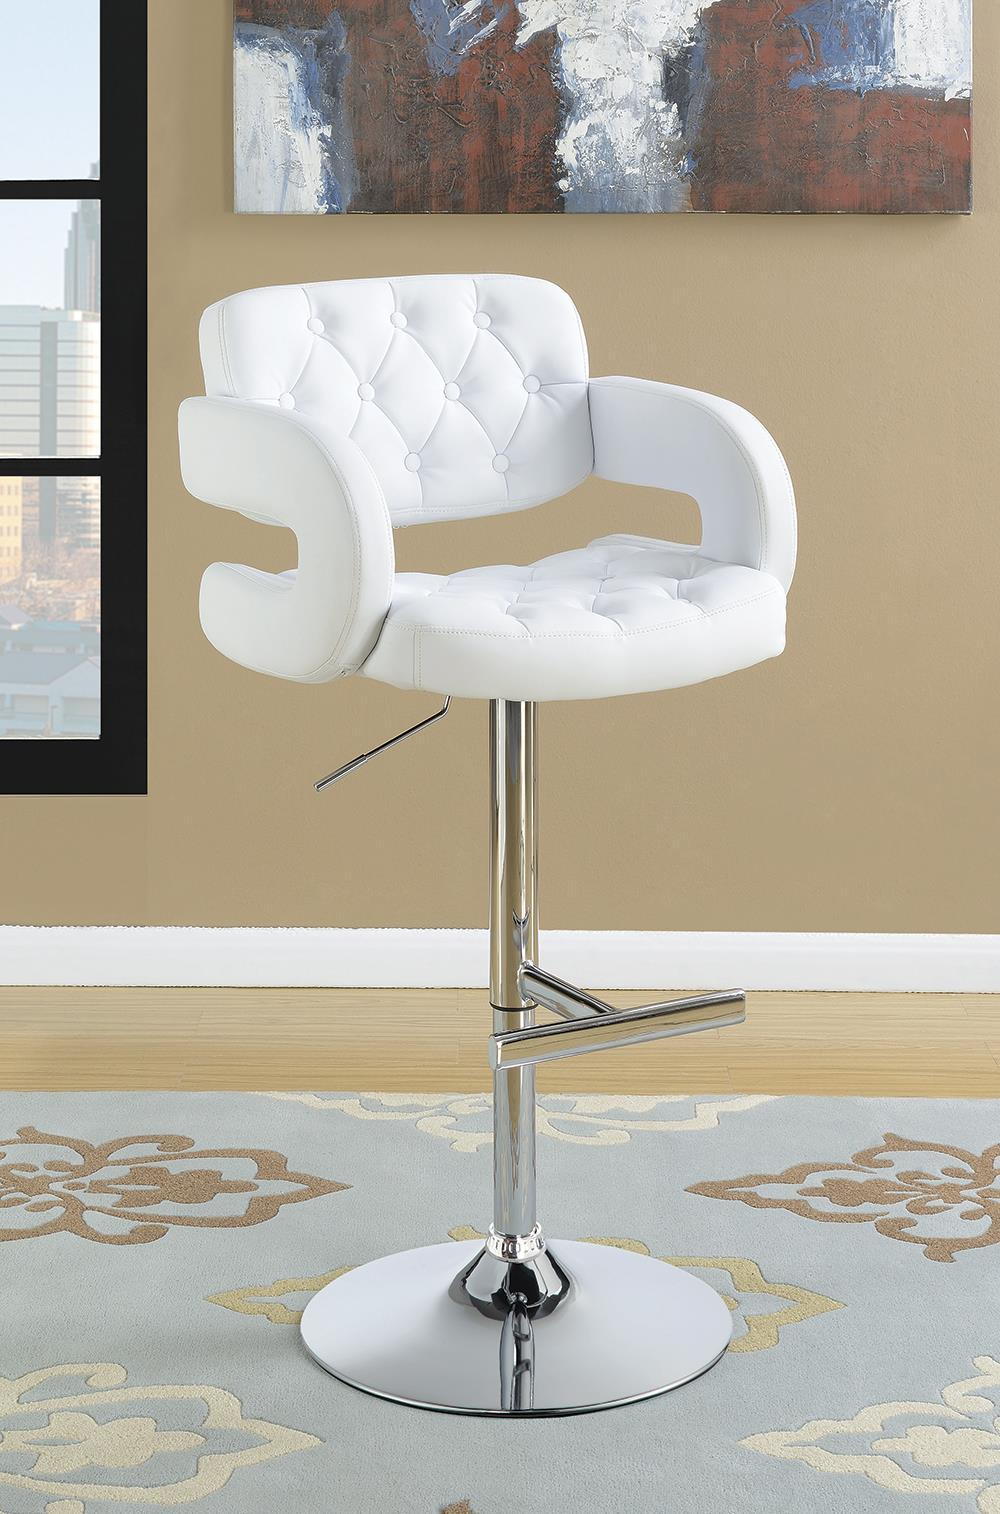 "Rec Room/bar Stools: Height Adjustable - White - 29"" Adjustable Height Bar Stool Chrome And White"